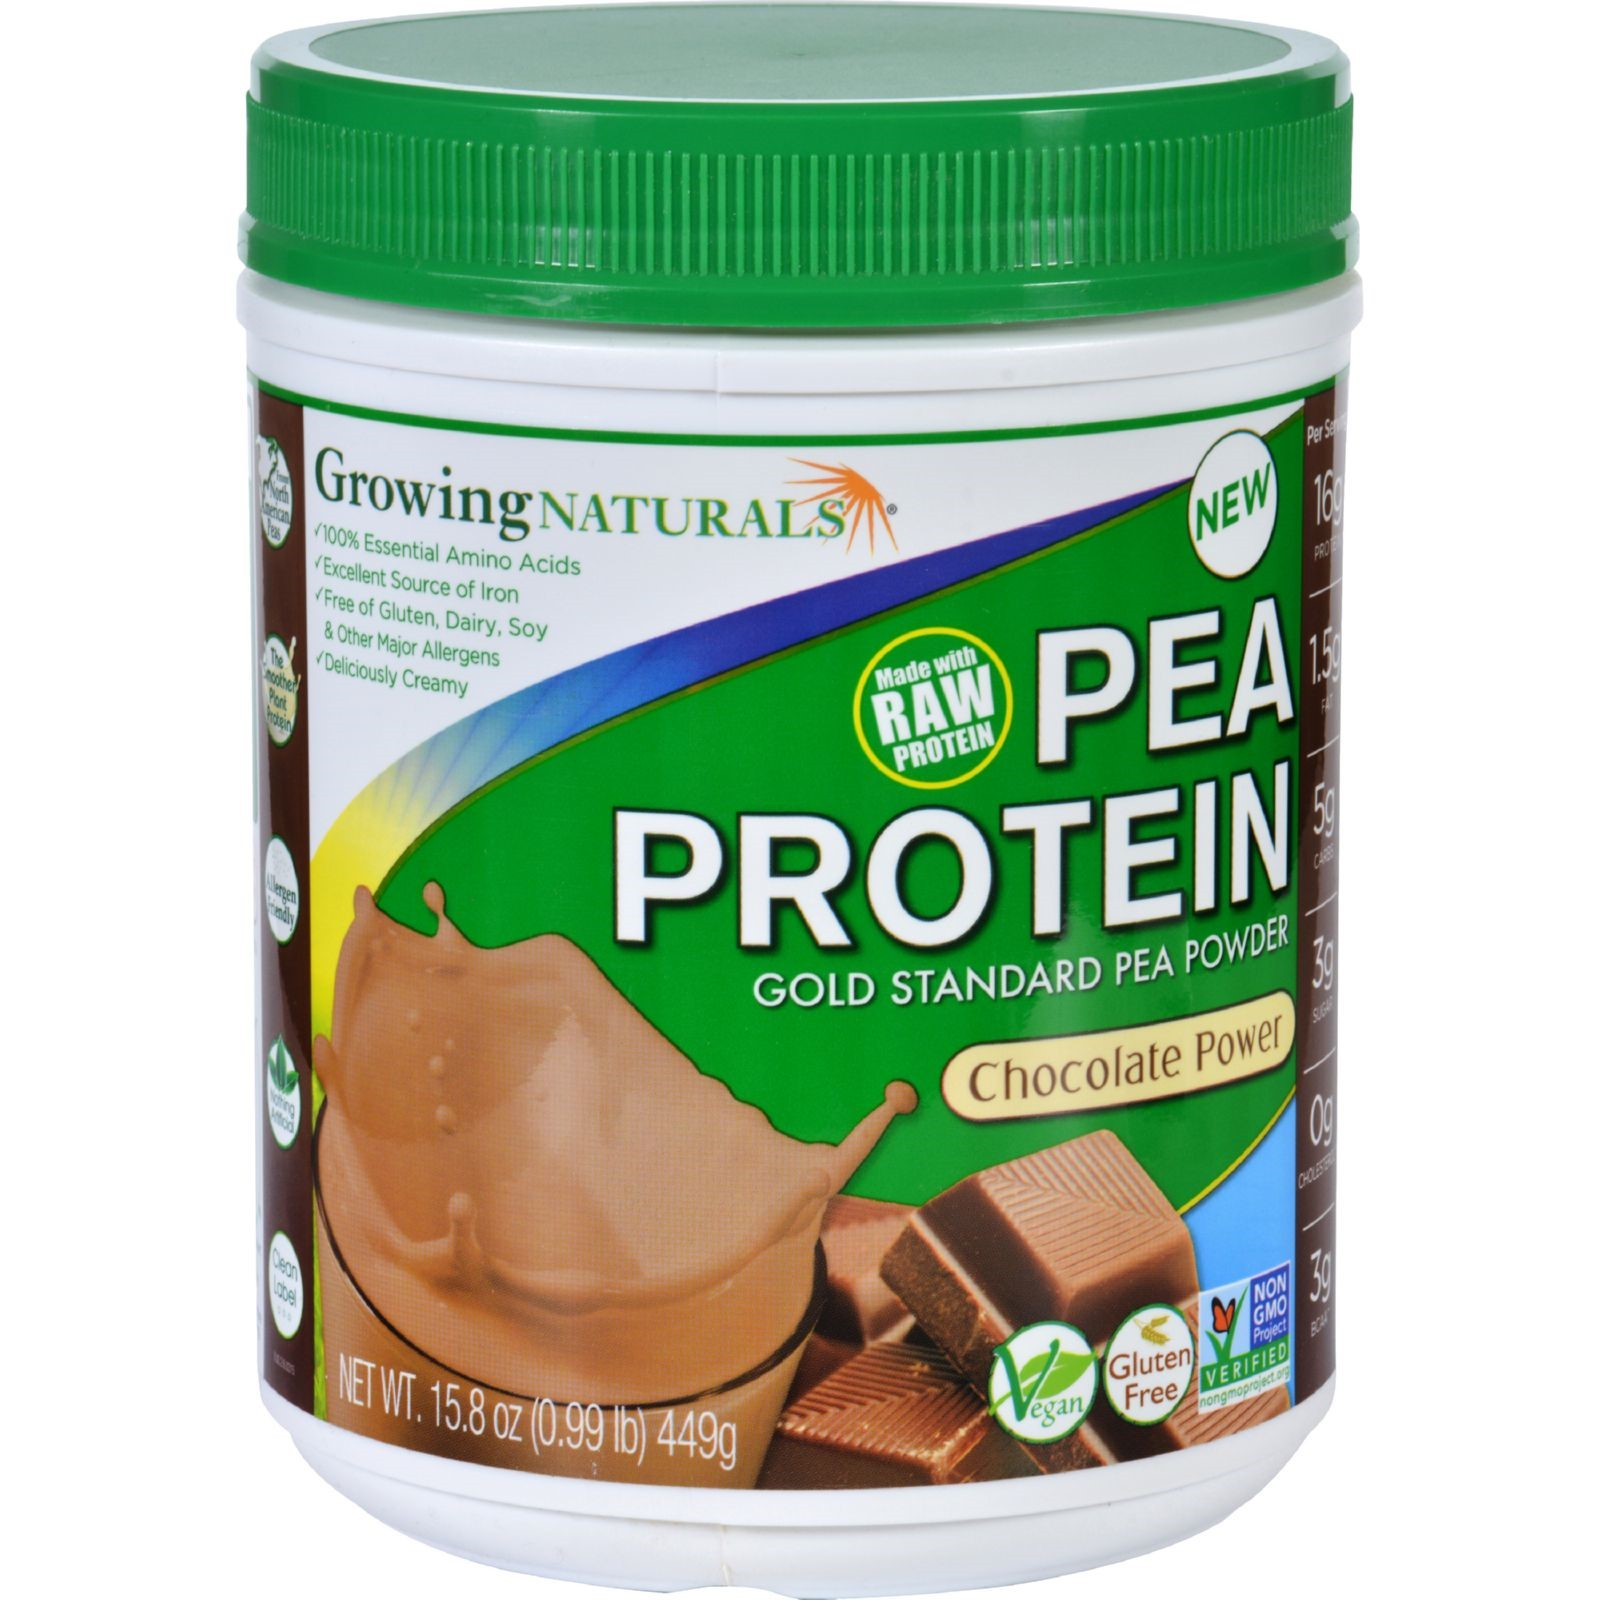 Growing Naturals Pea Protein Chocolate, 1 lb